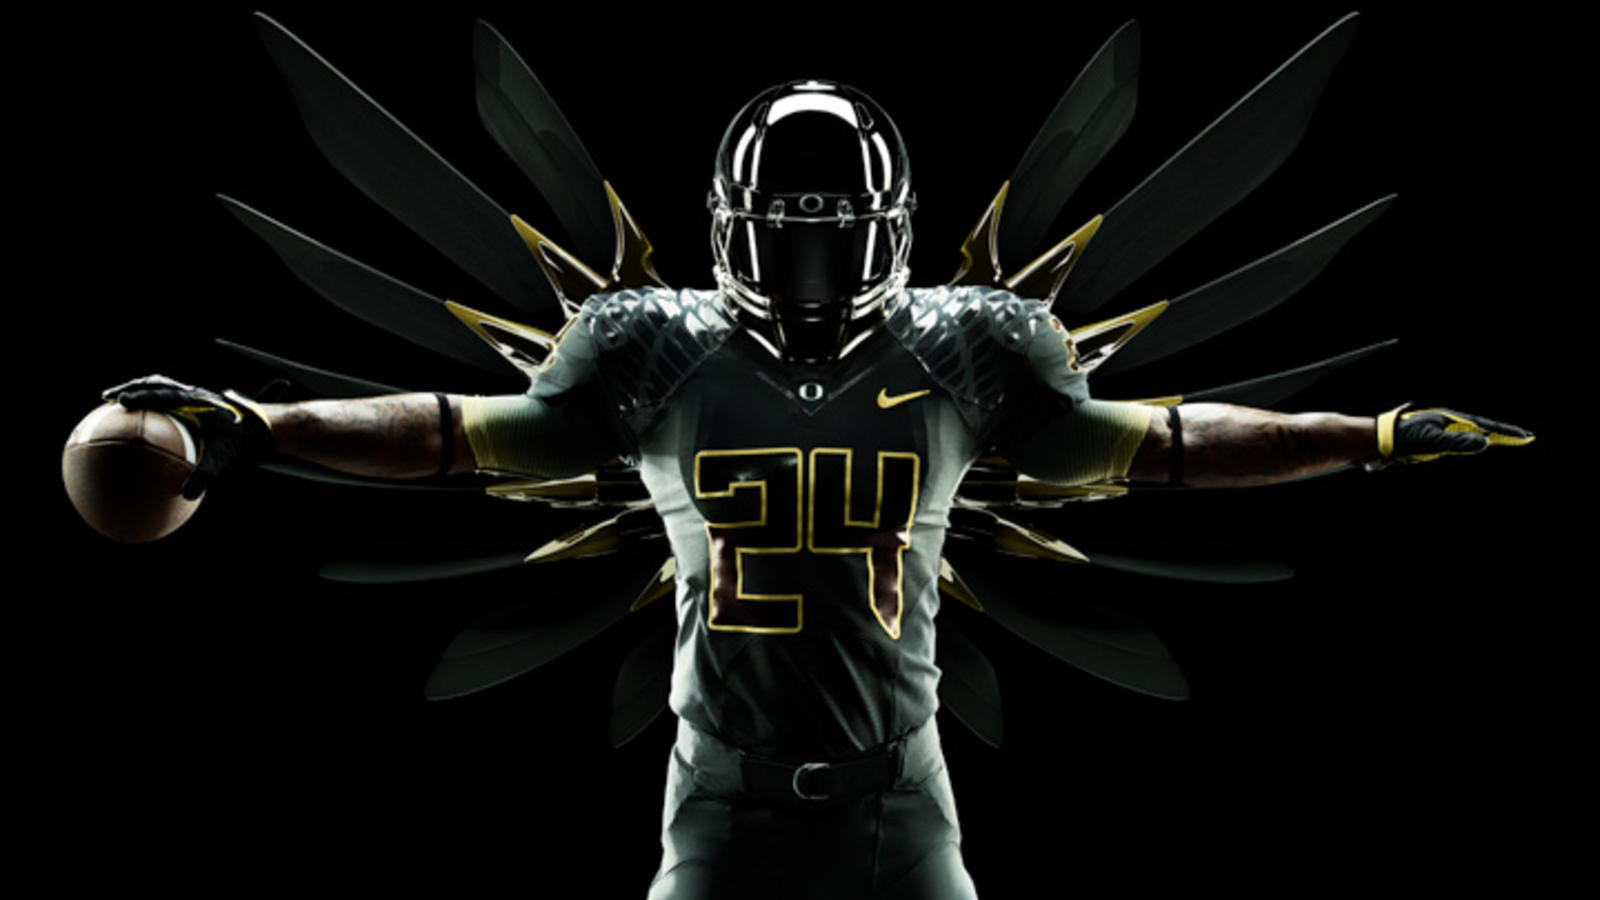 nike unveils new integrated uniform system for oregon ducks in rose